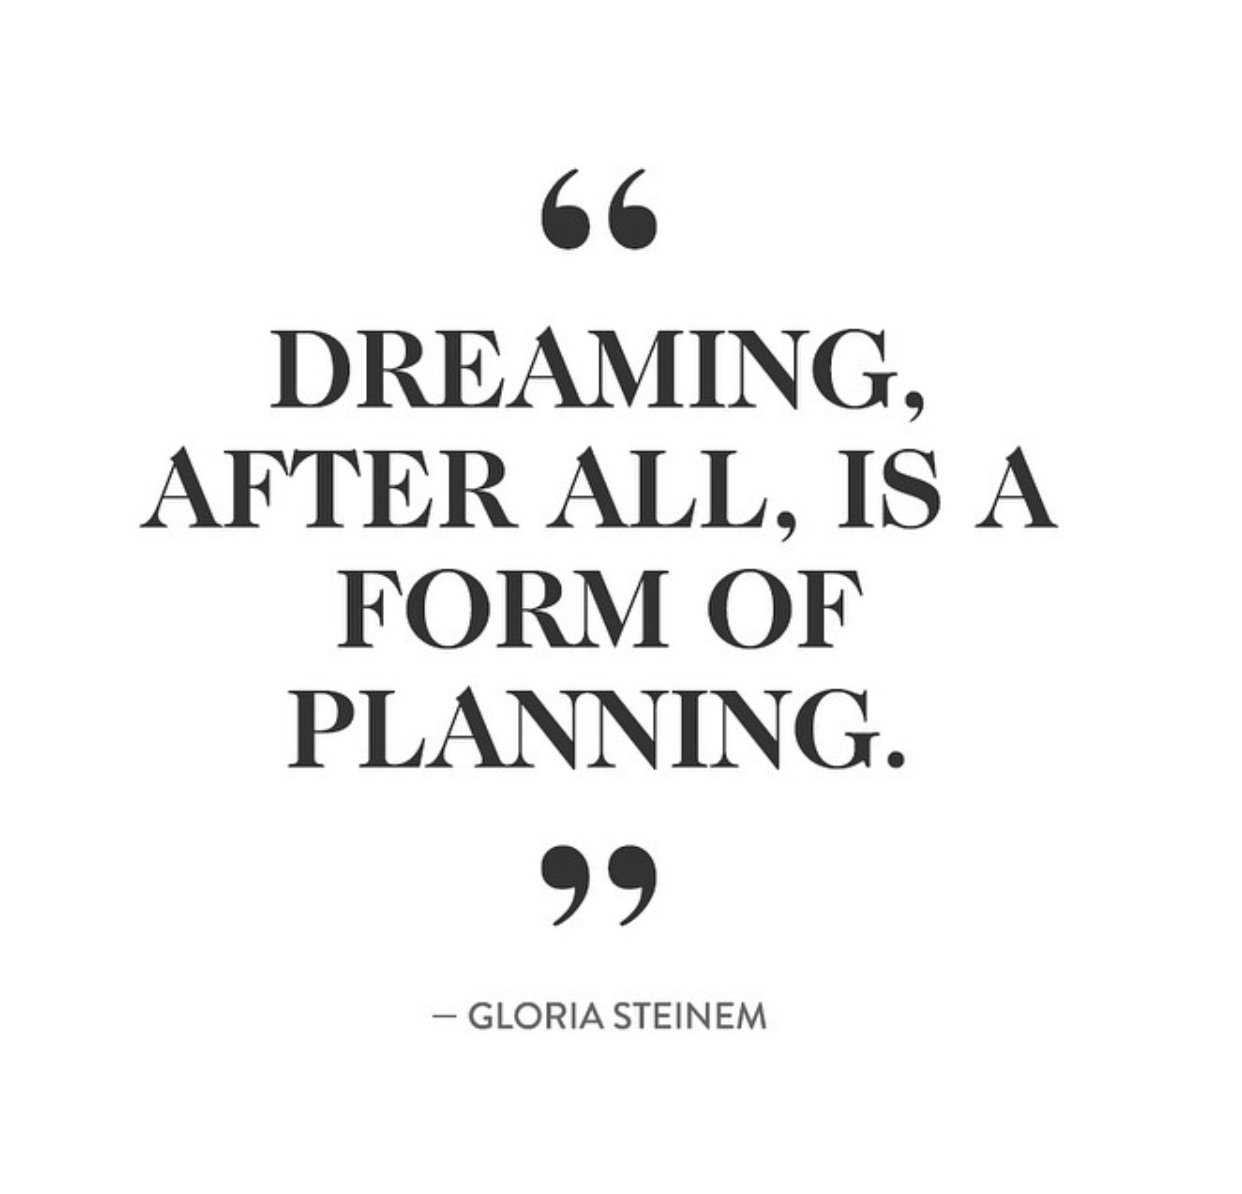 Goop On Mondaymantra Goopquotes  F F  A Soul Love Quotesdream